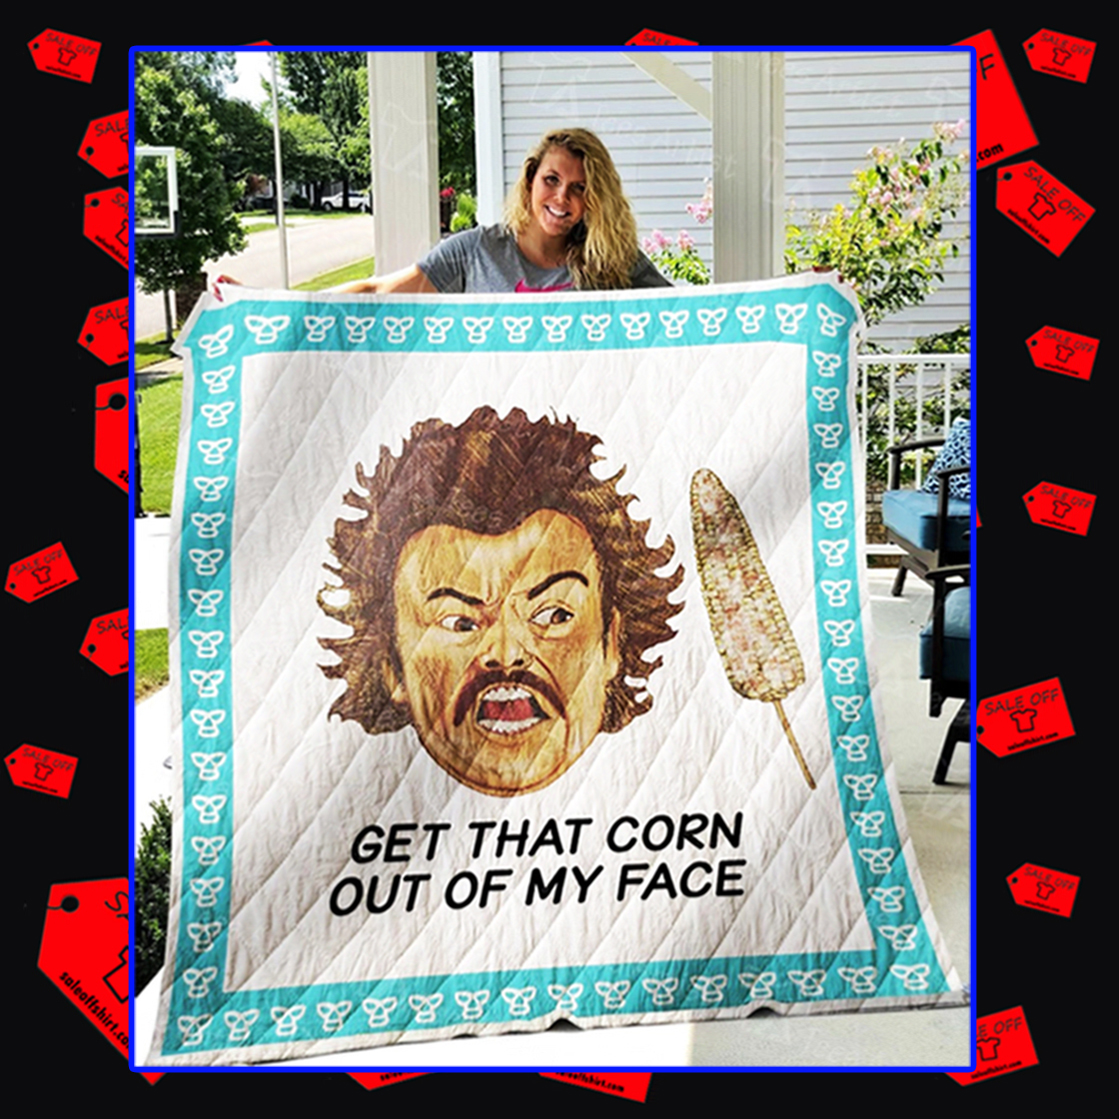 Nacho Libre get that corn out of my face quilt blanket - king 80x90 inches